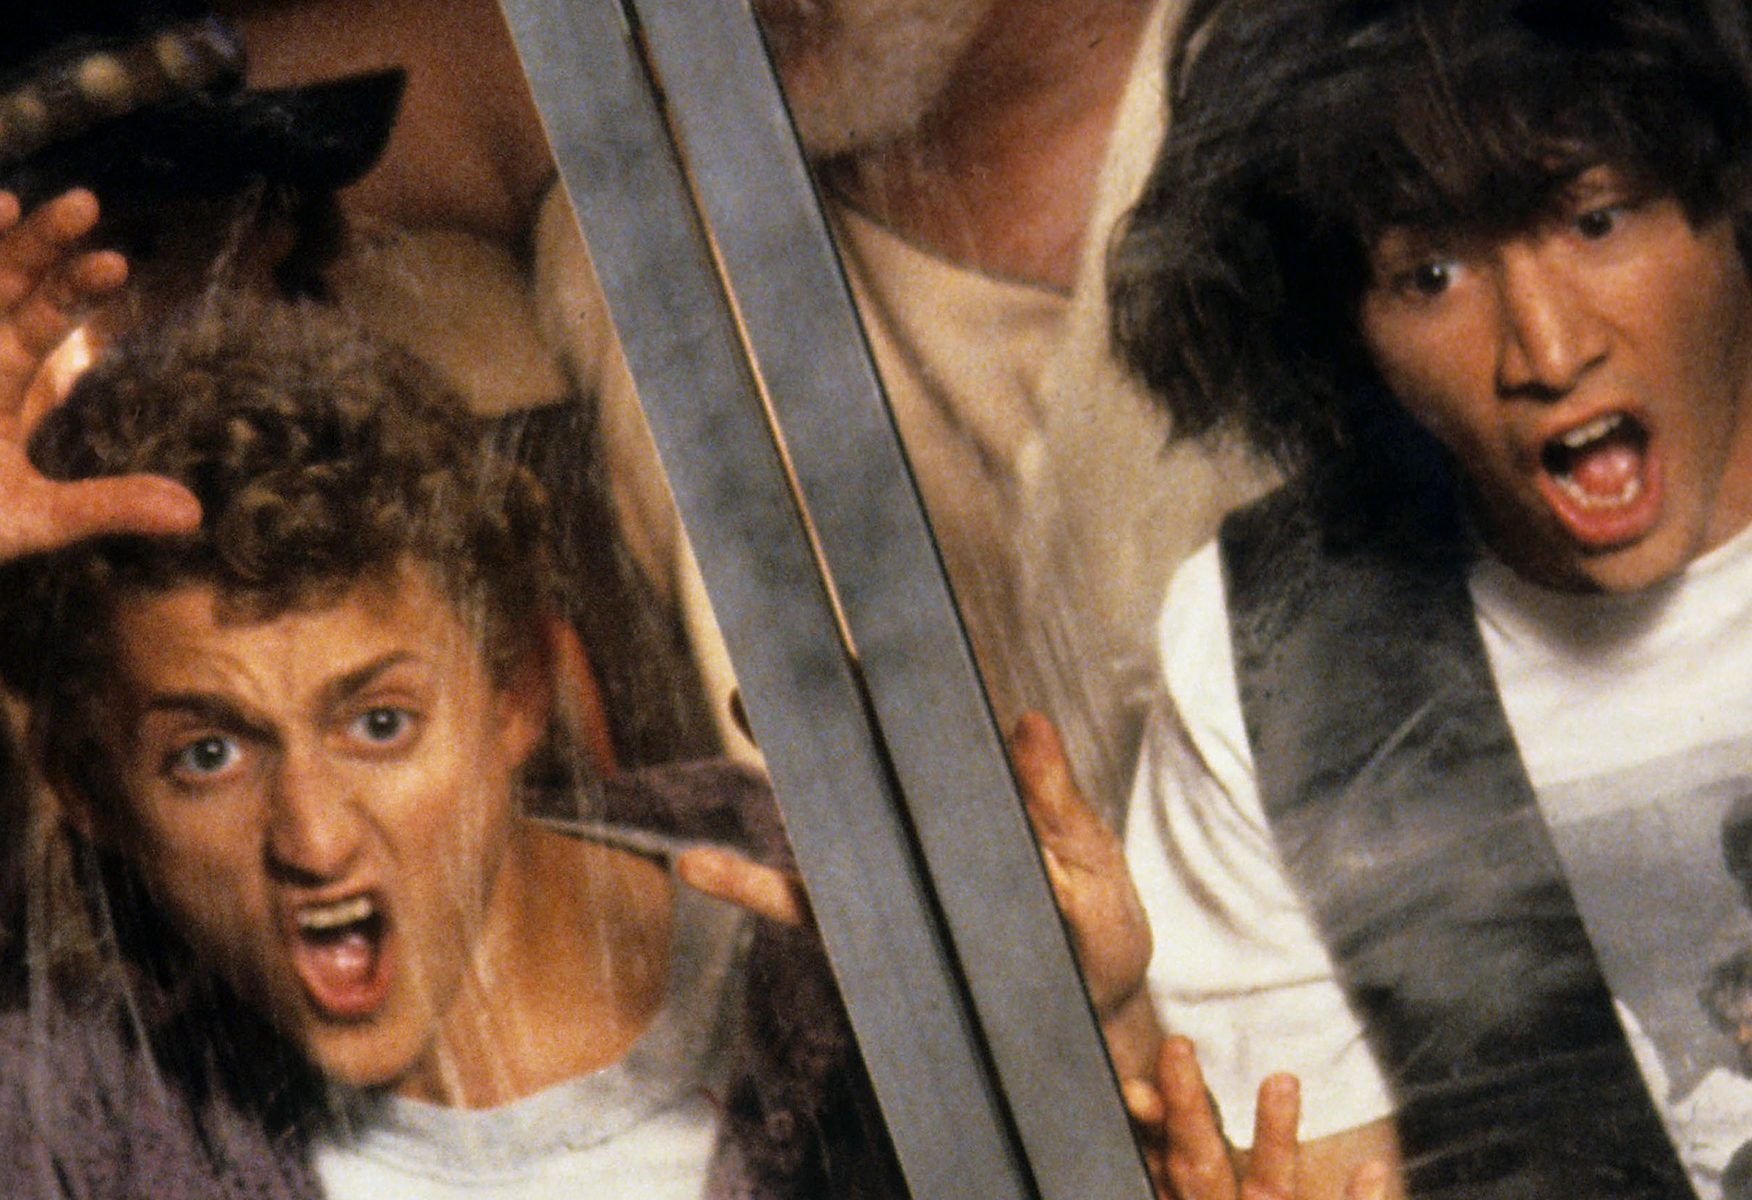 bill ted film today mainv2 191217 cbd6da25b669b8a30e385b1baa38903d e1616514483471 25 Totally Non-Heinous Facts About Bill & Ted's Excellent Adventure!